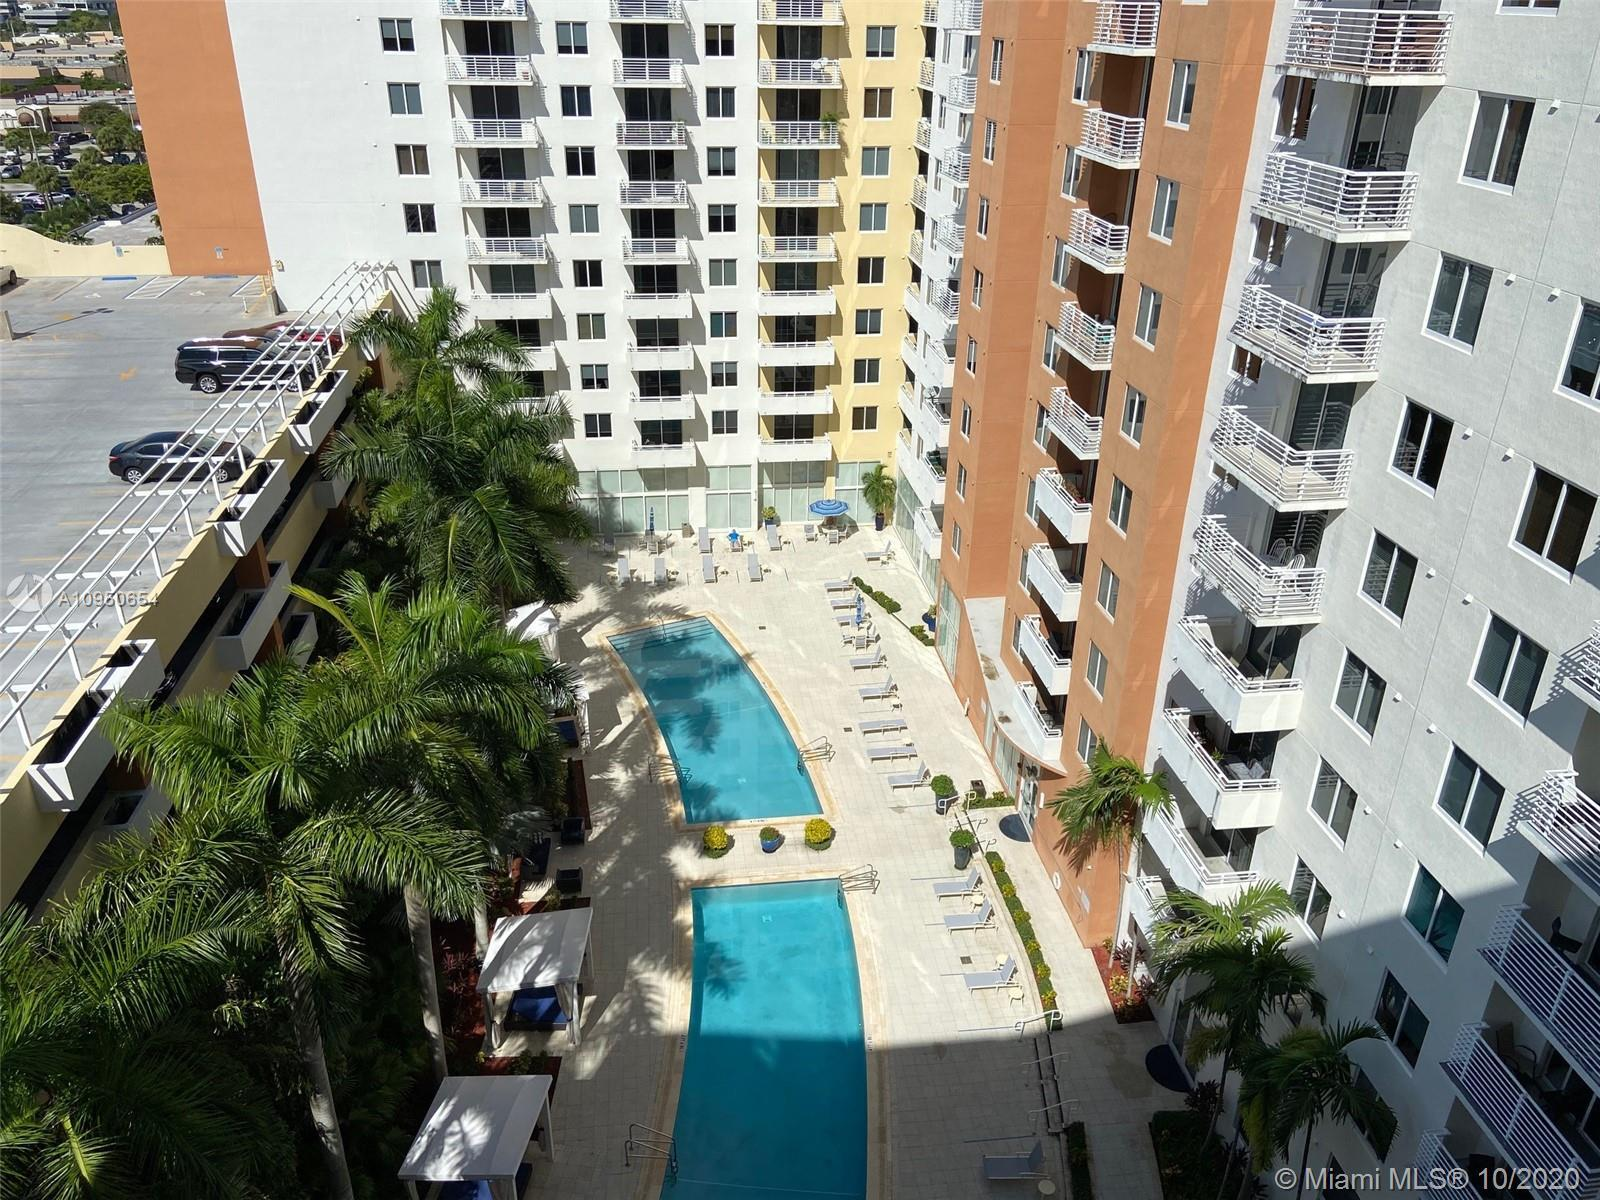 GREAT OPPORTUNITY TO OWN IN NEWER BUILDING IN AVENTURA AT A VERY REASONABLE PRICE. NICE LAMINATE FLO